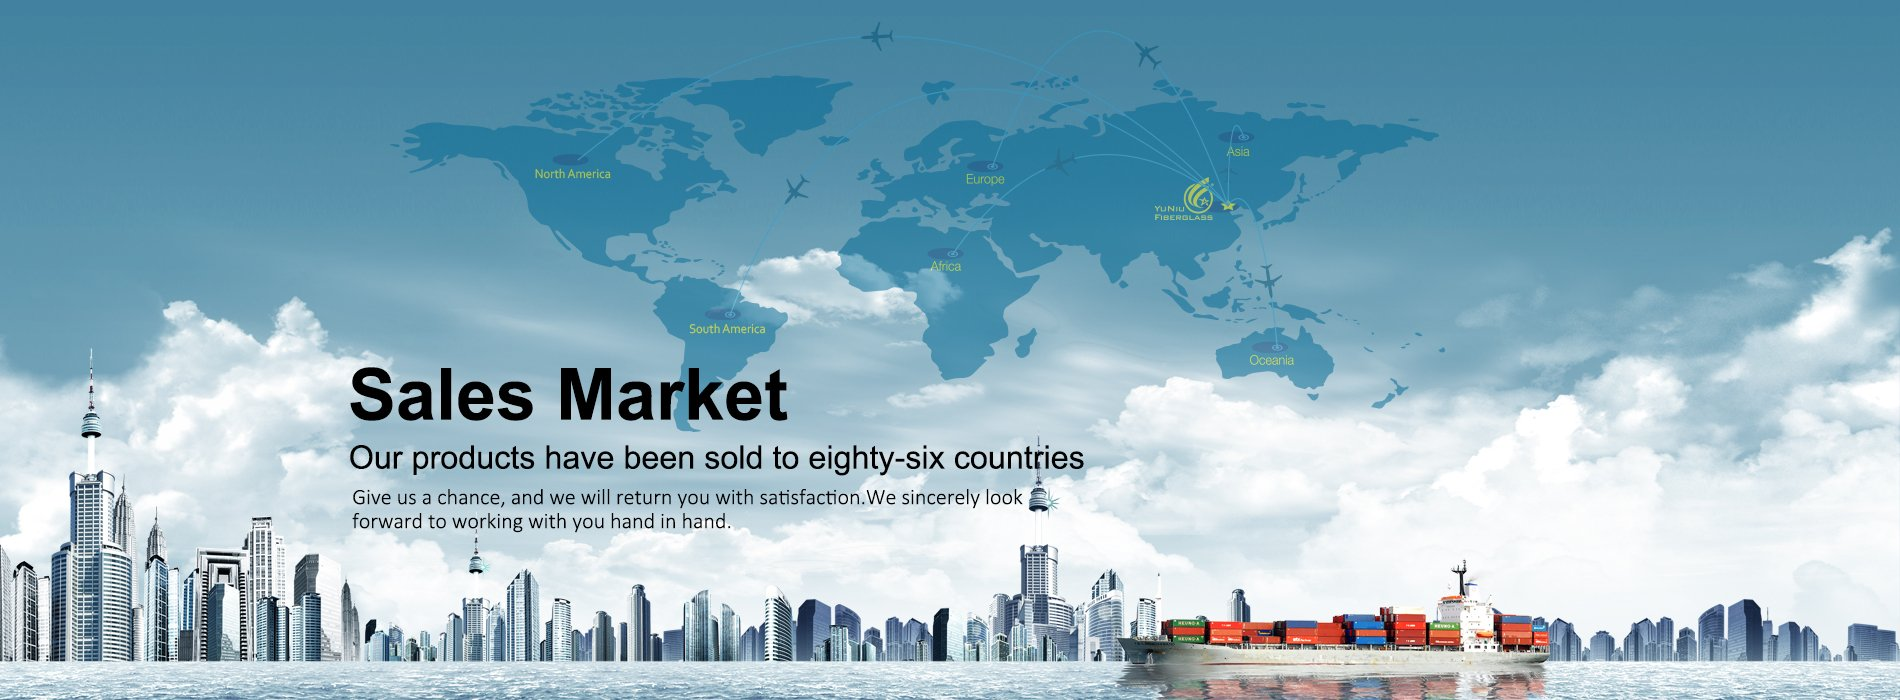 Yuniu fiberglass products have been sold to eighty-six countries